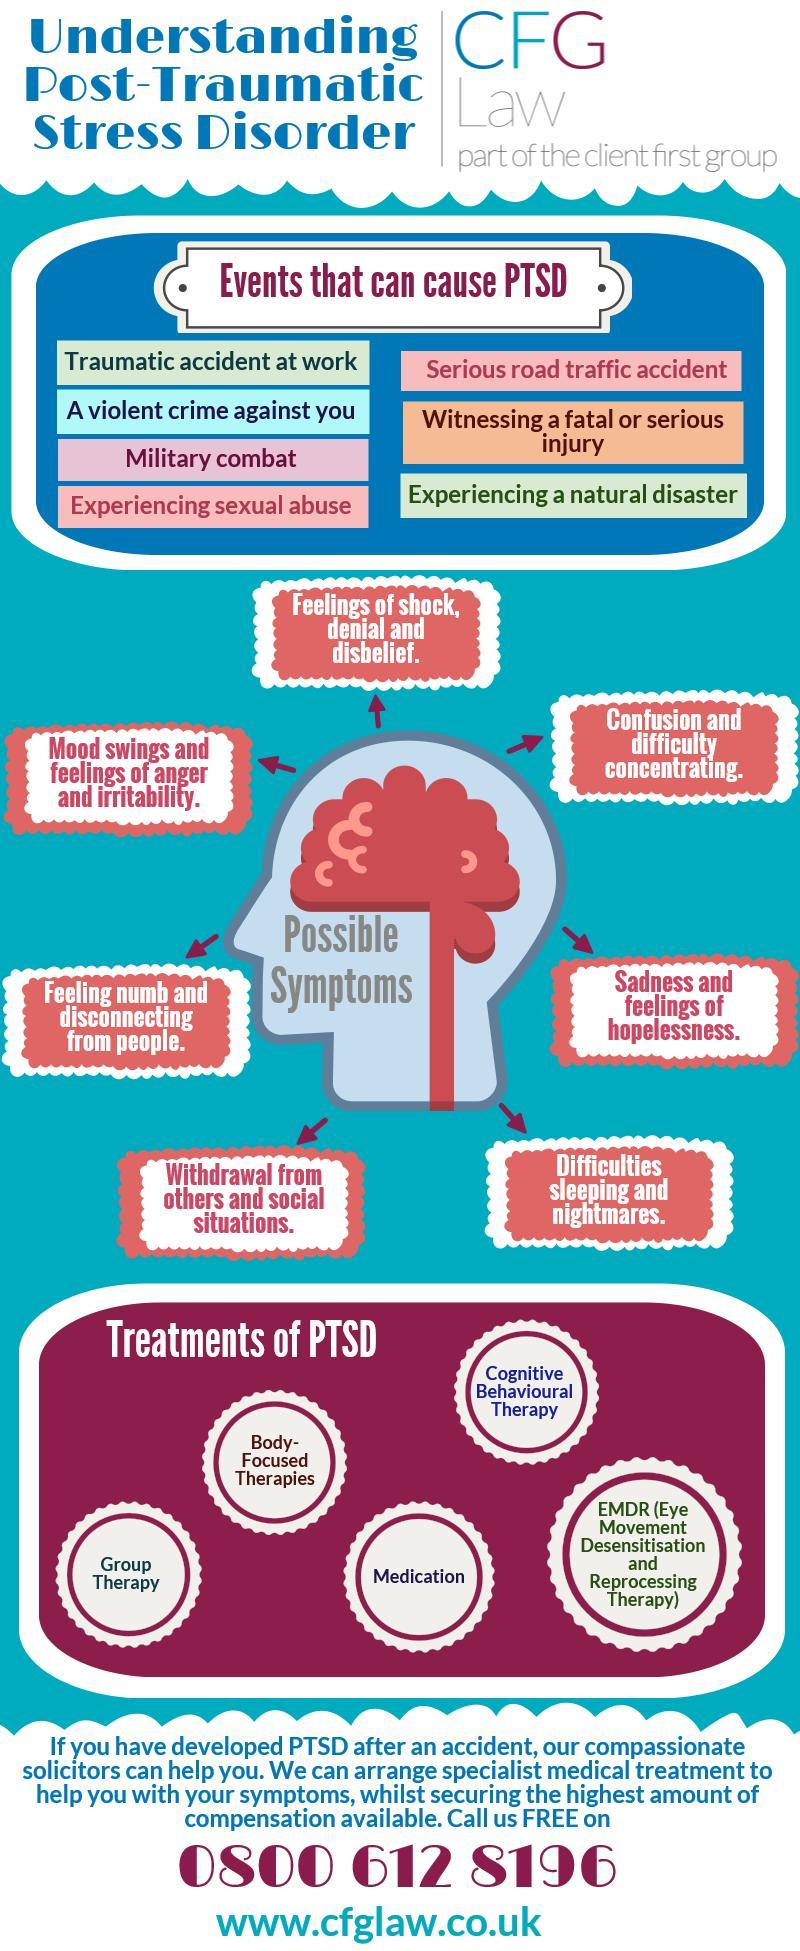 Infographic: Understanding Post-Traumatic Stress Disorder